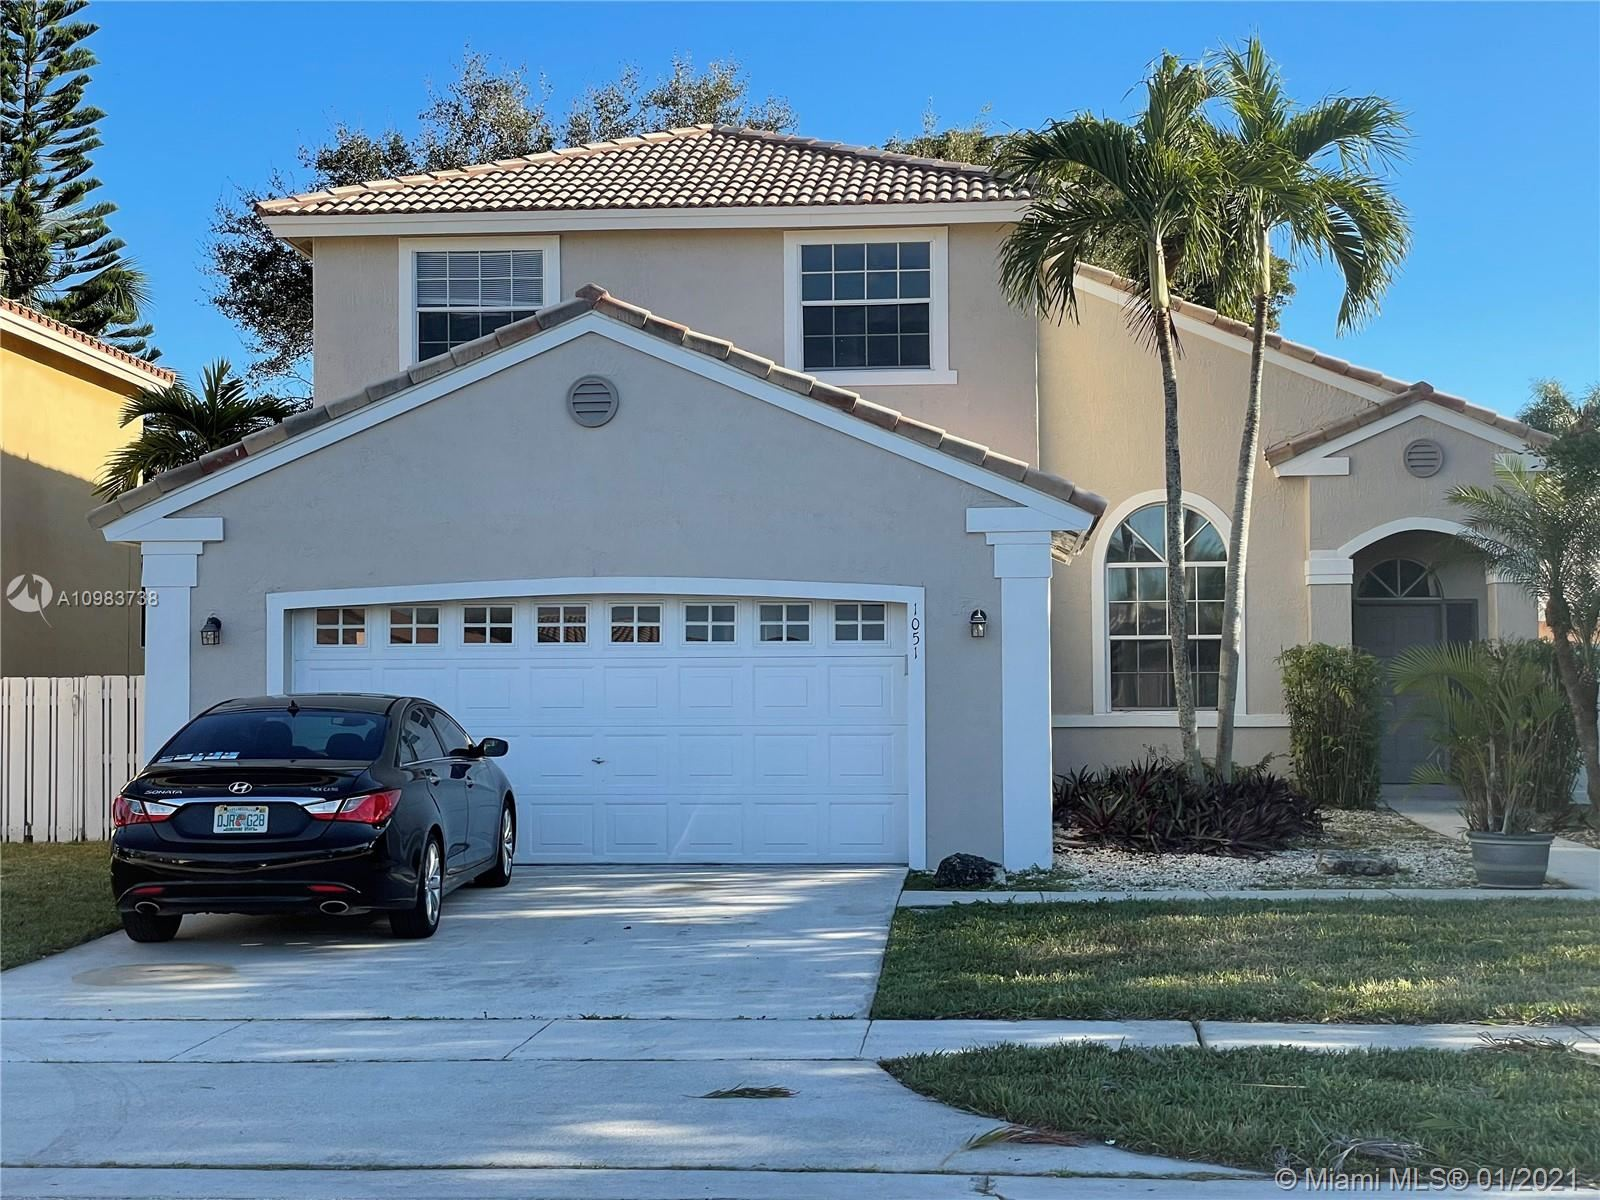 1051 NW 190th Ave, Pembroke Pines, FL 33029 - #: A10983738